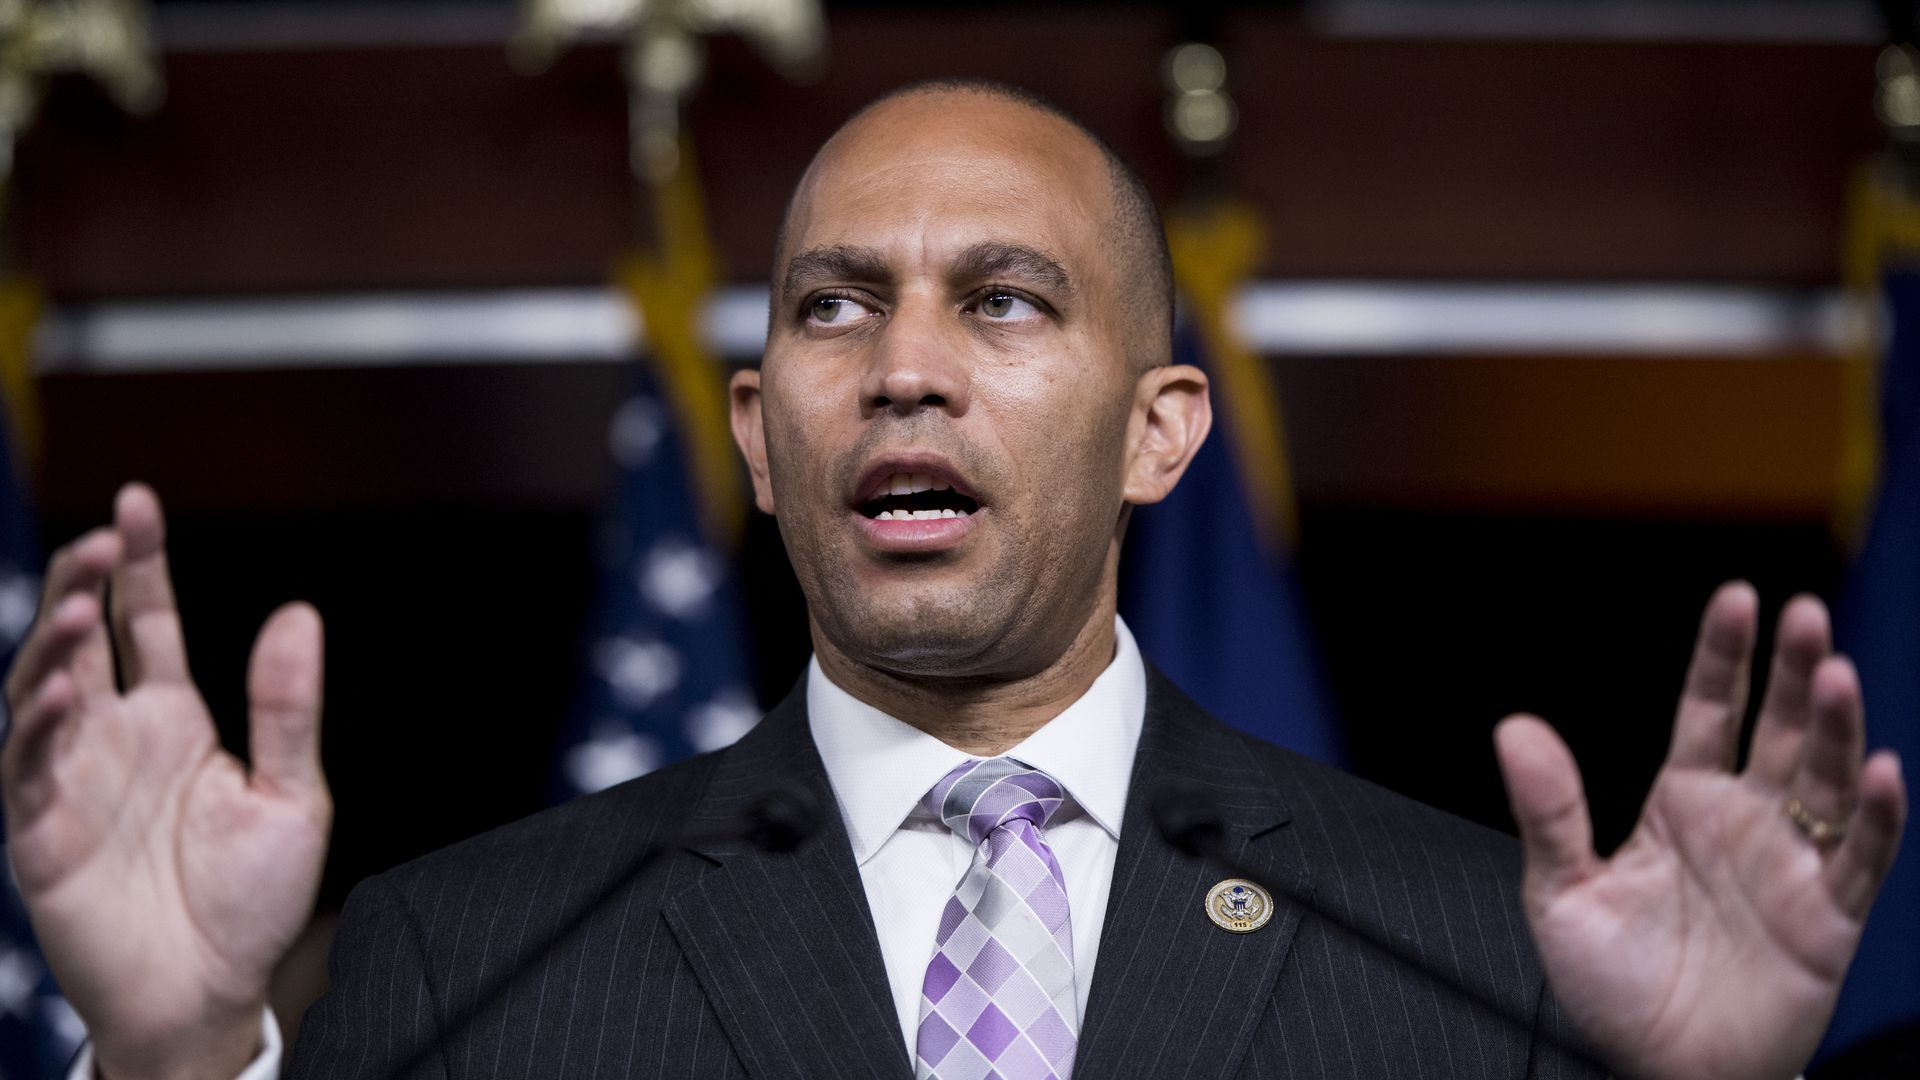 Rep. Hakeem Jeffries with his mouth open and hands up by his sides.